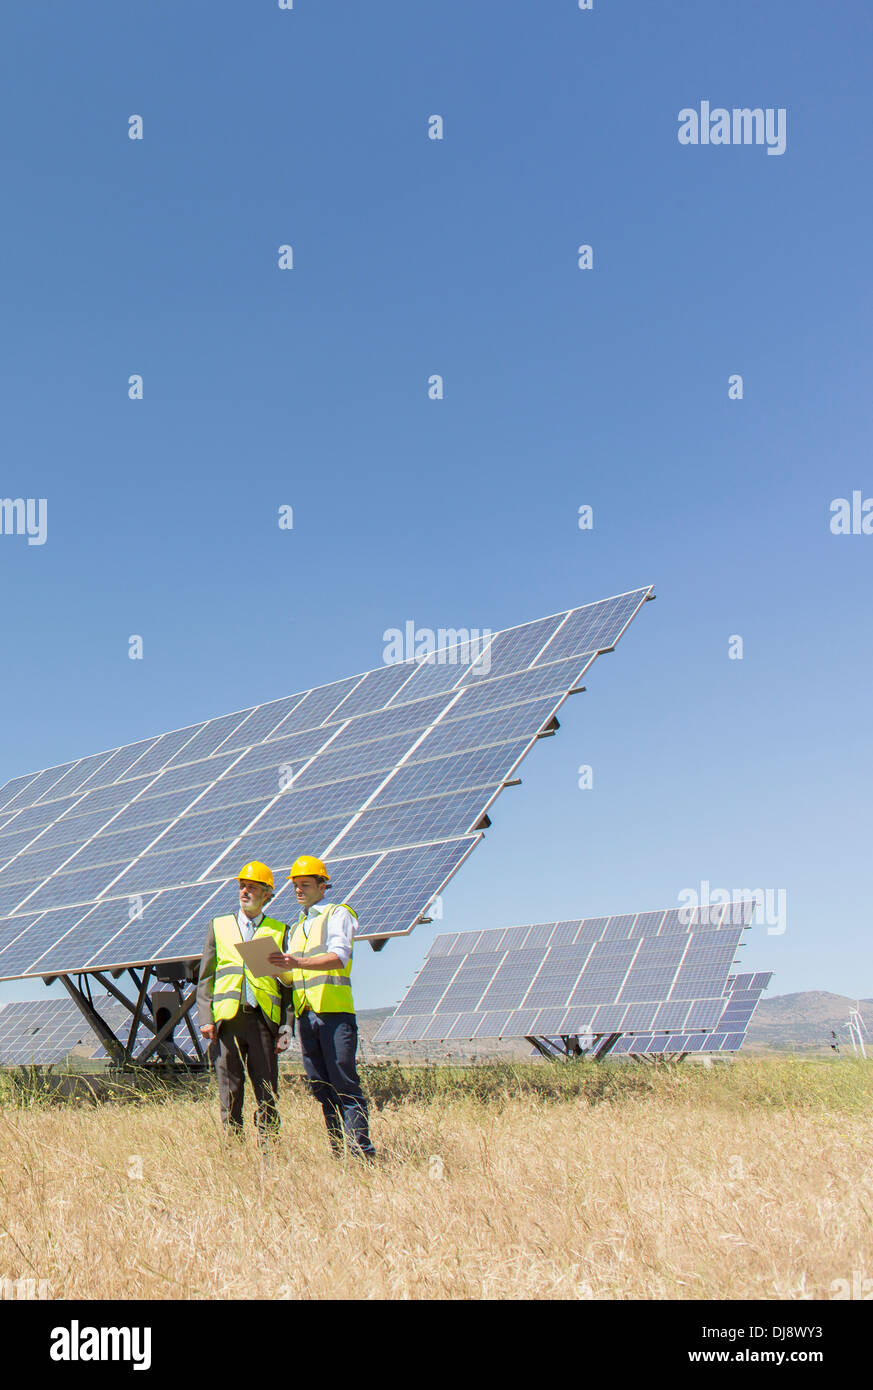 Workers standing by solar panels in rural landscape - Stock Image